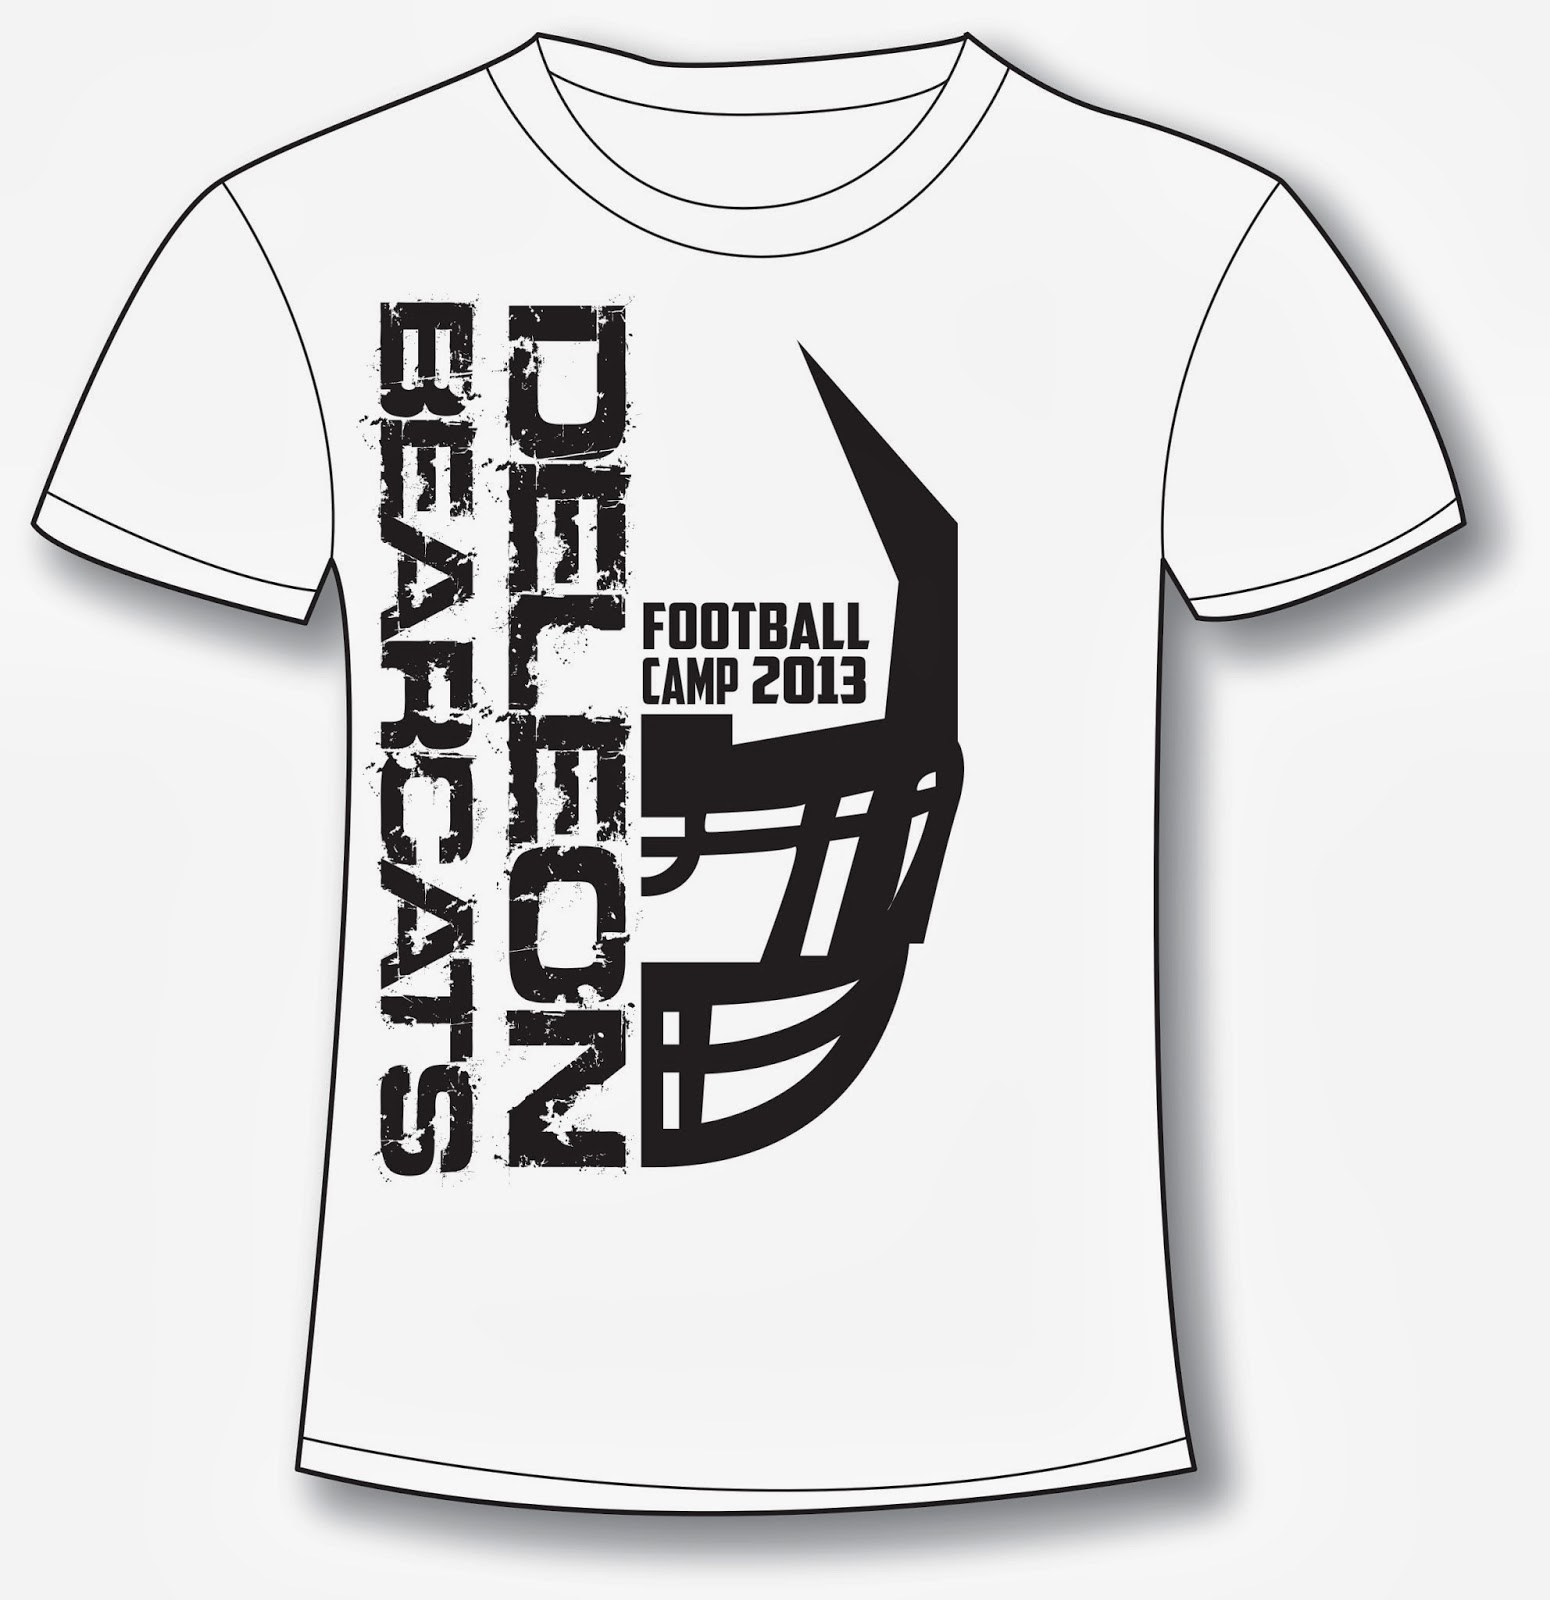 shirt football t shirts more football shirt designs football ideas - T Shirts Designs Ideas